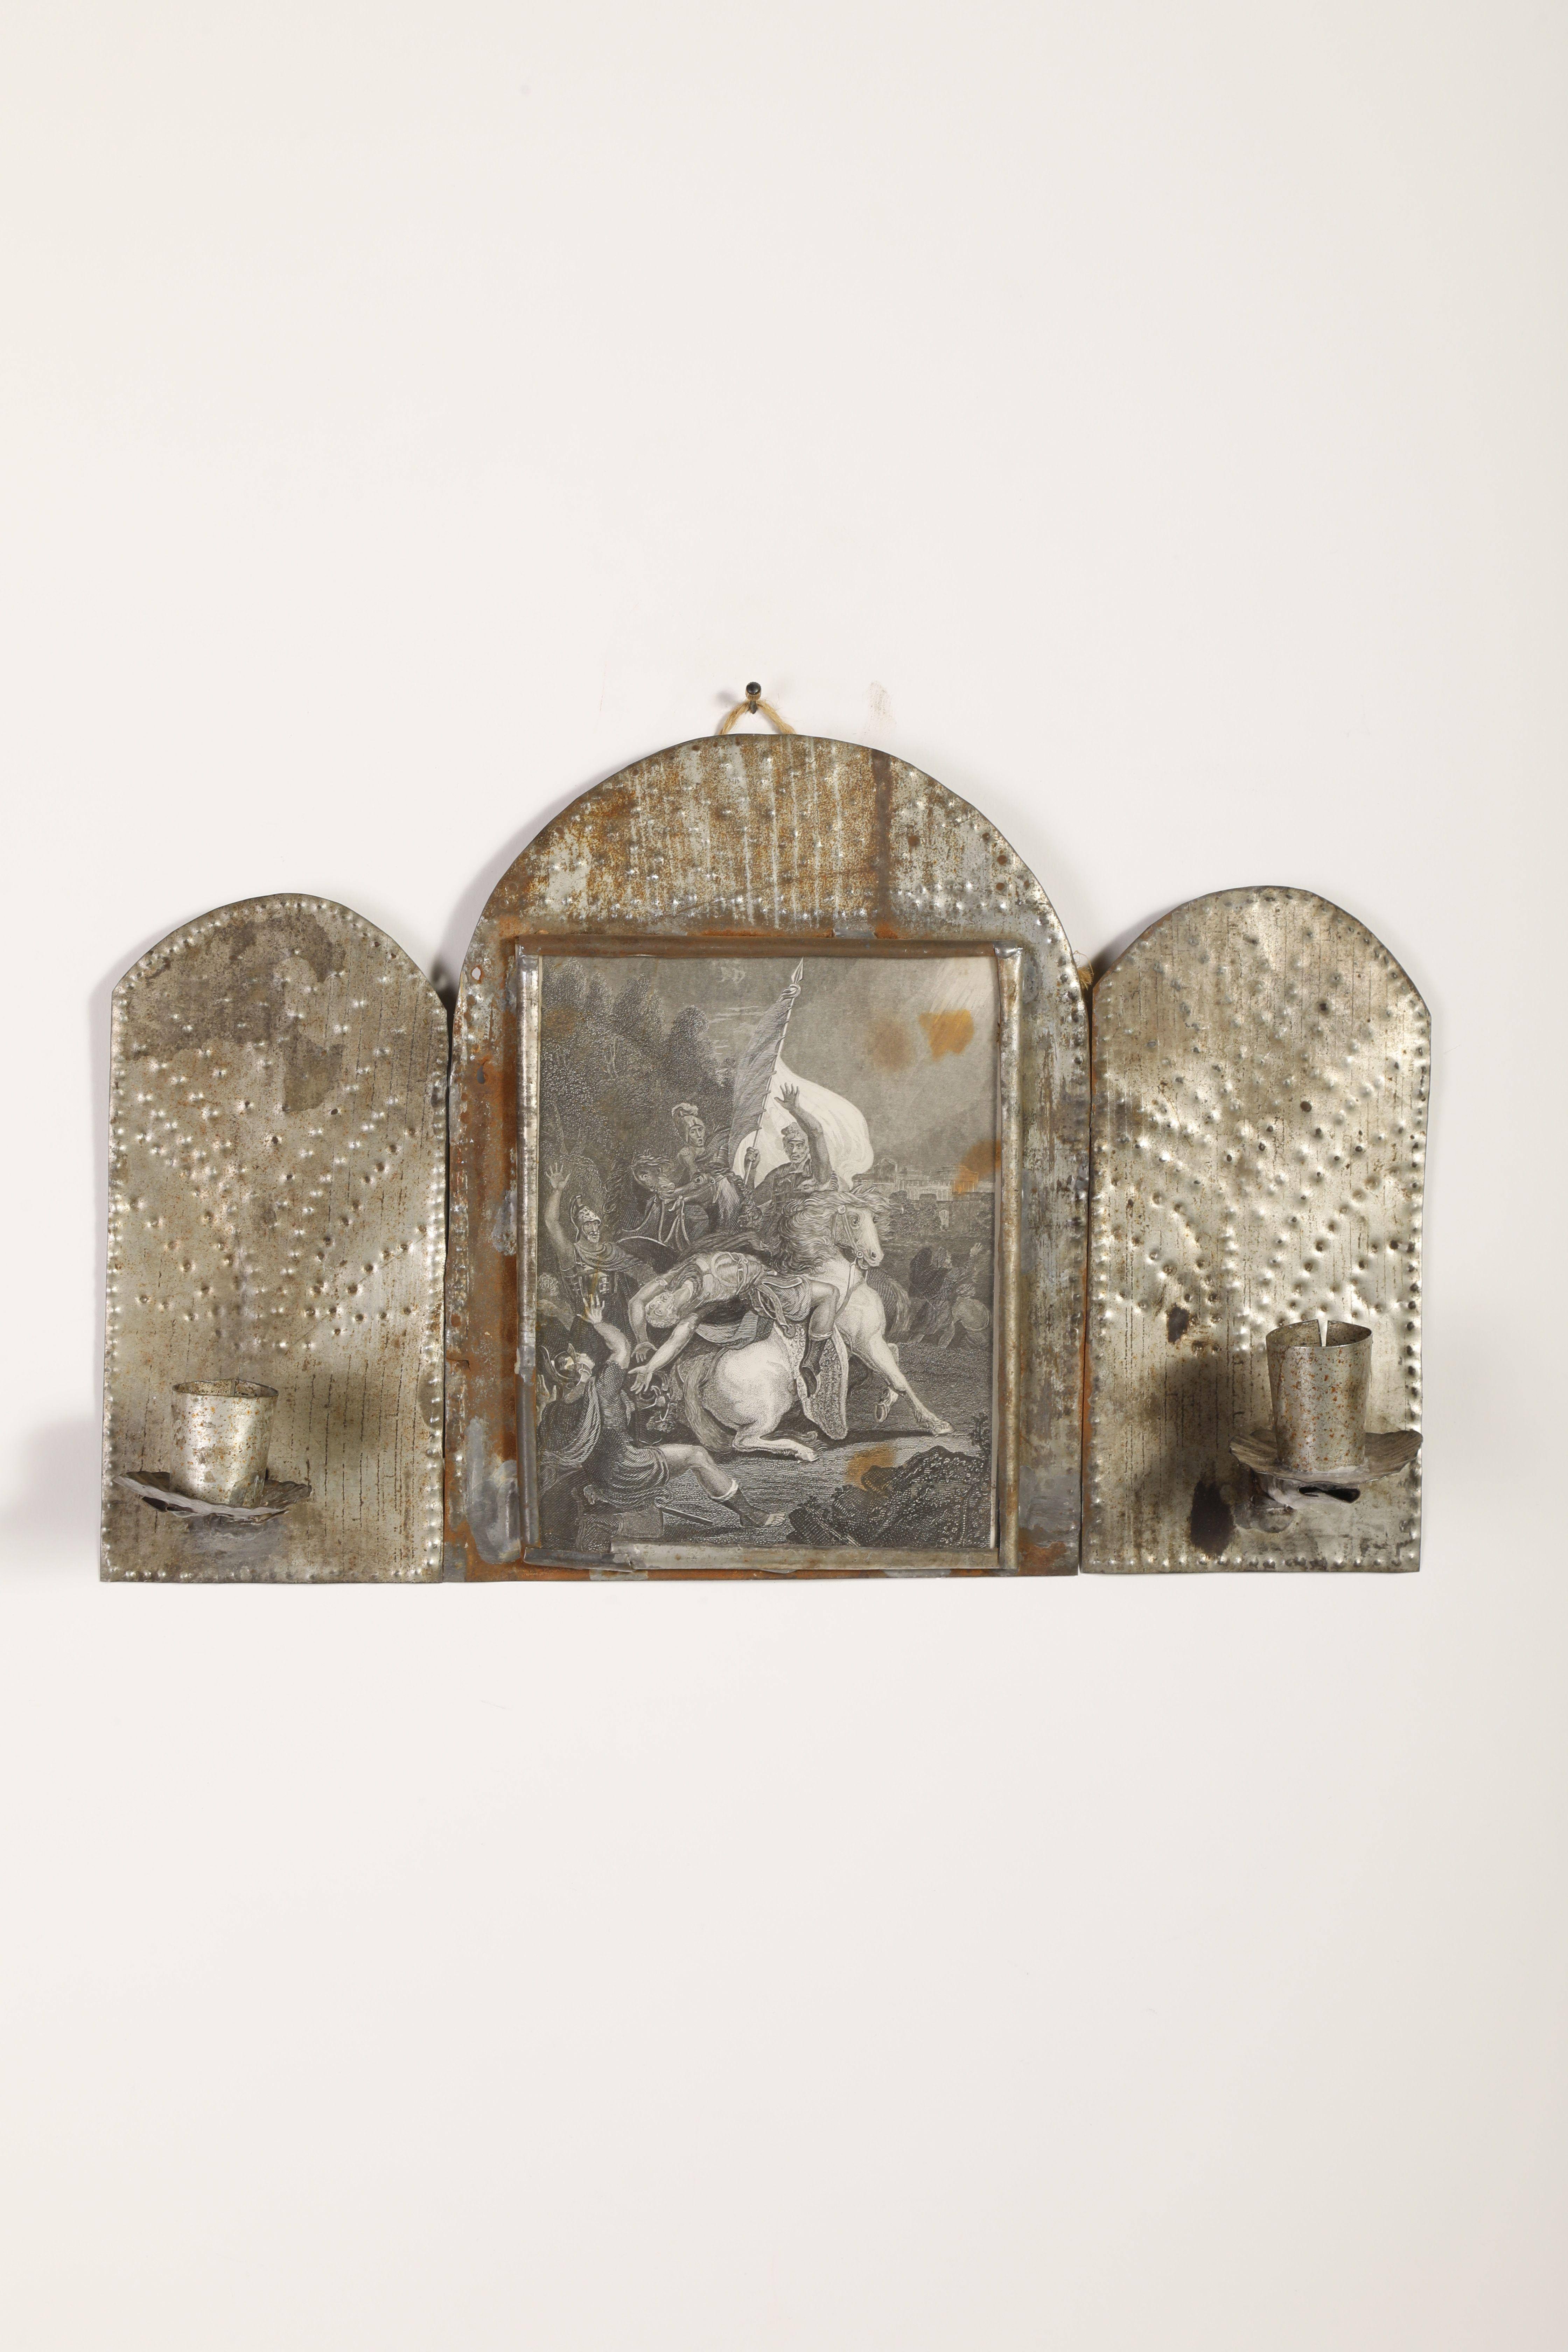 Tin Candle Sconce with Devotional Print , ca. 1885